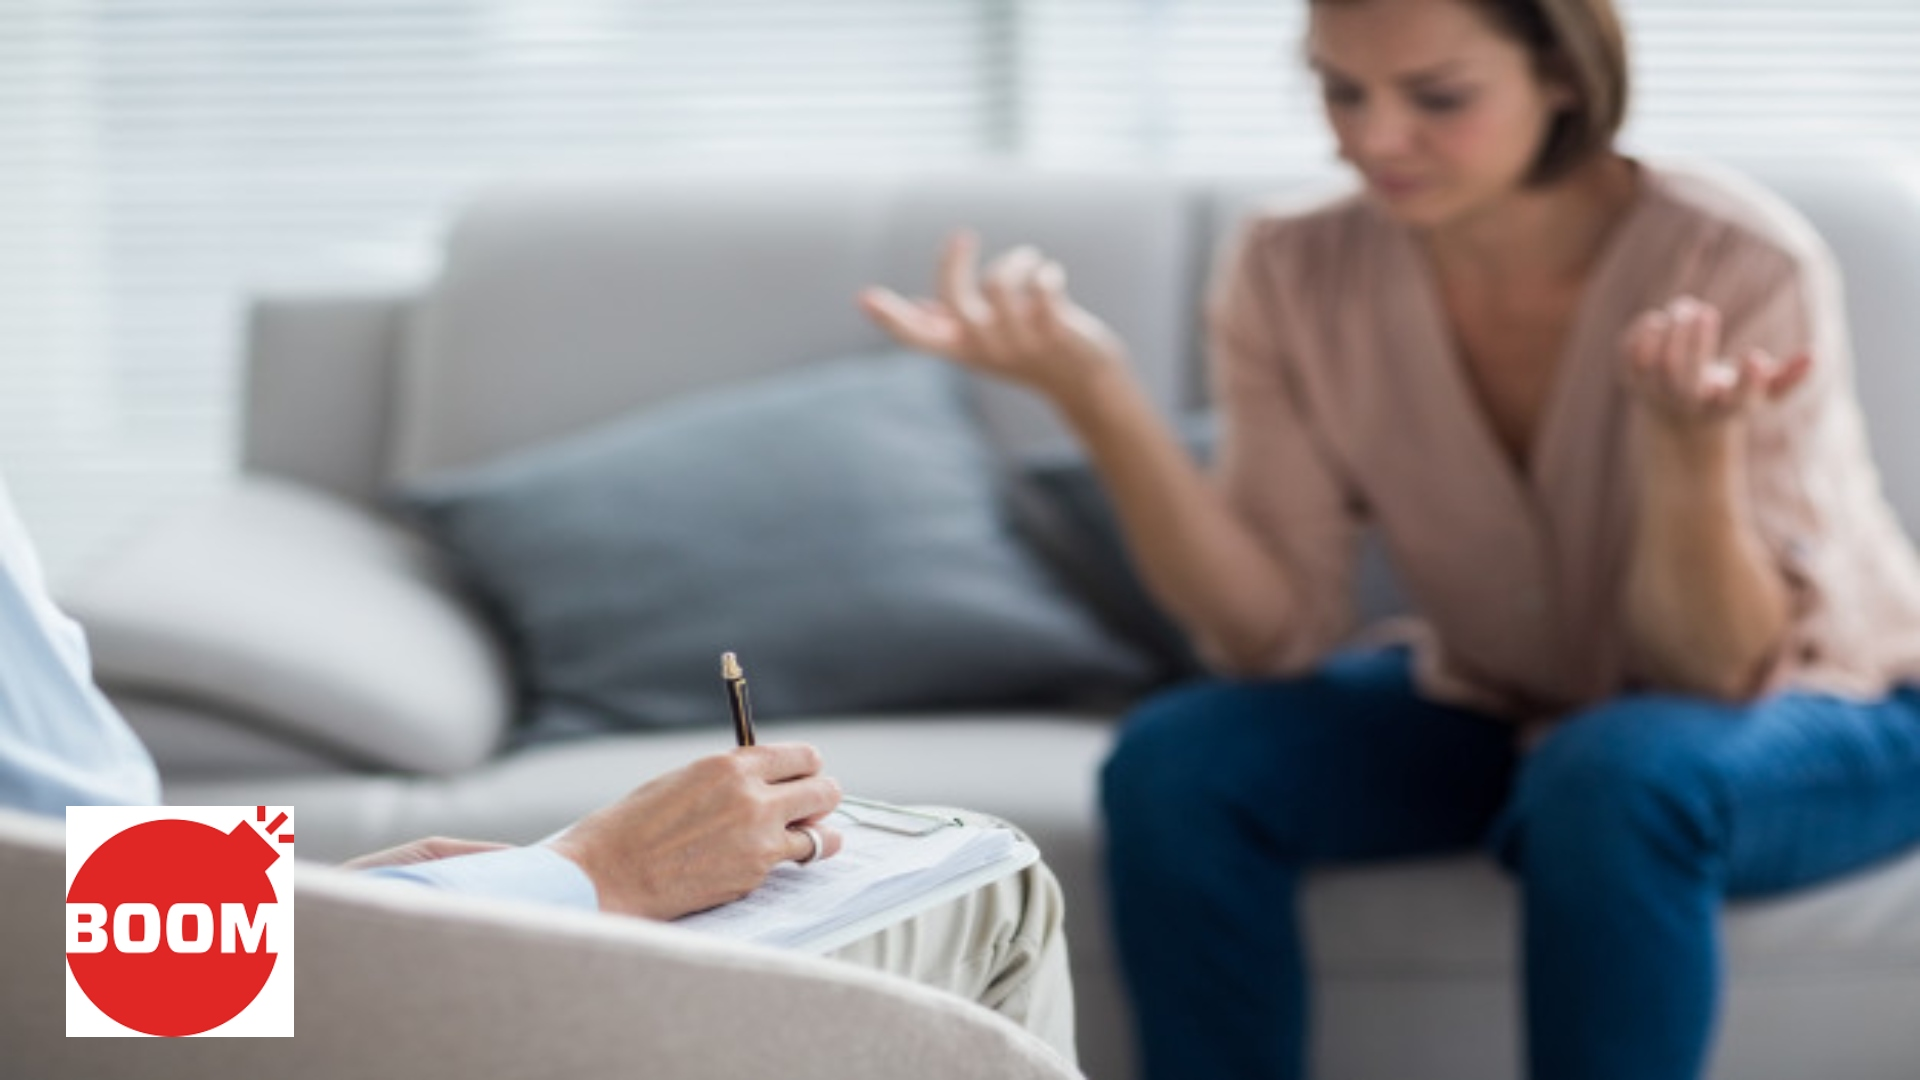 How to find a good therapist and other questions, answered | BOOM